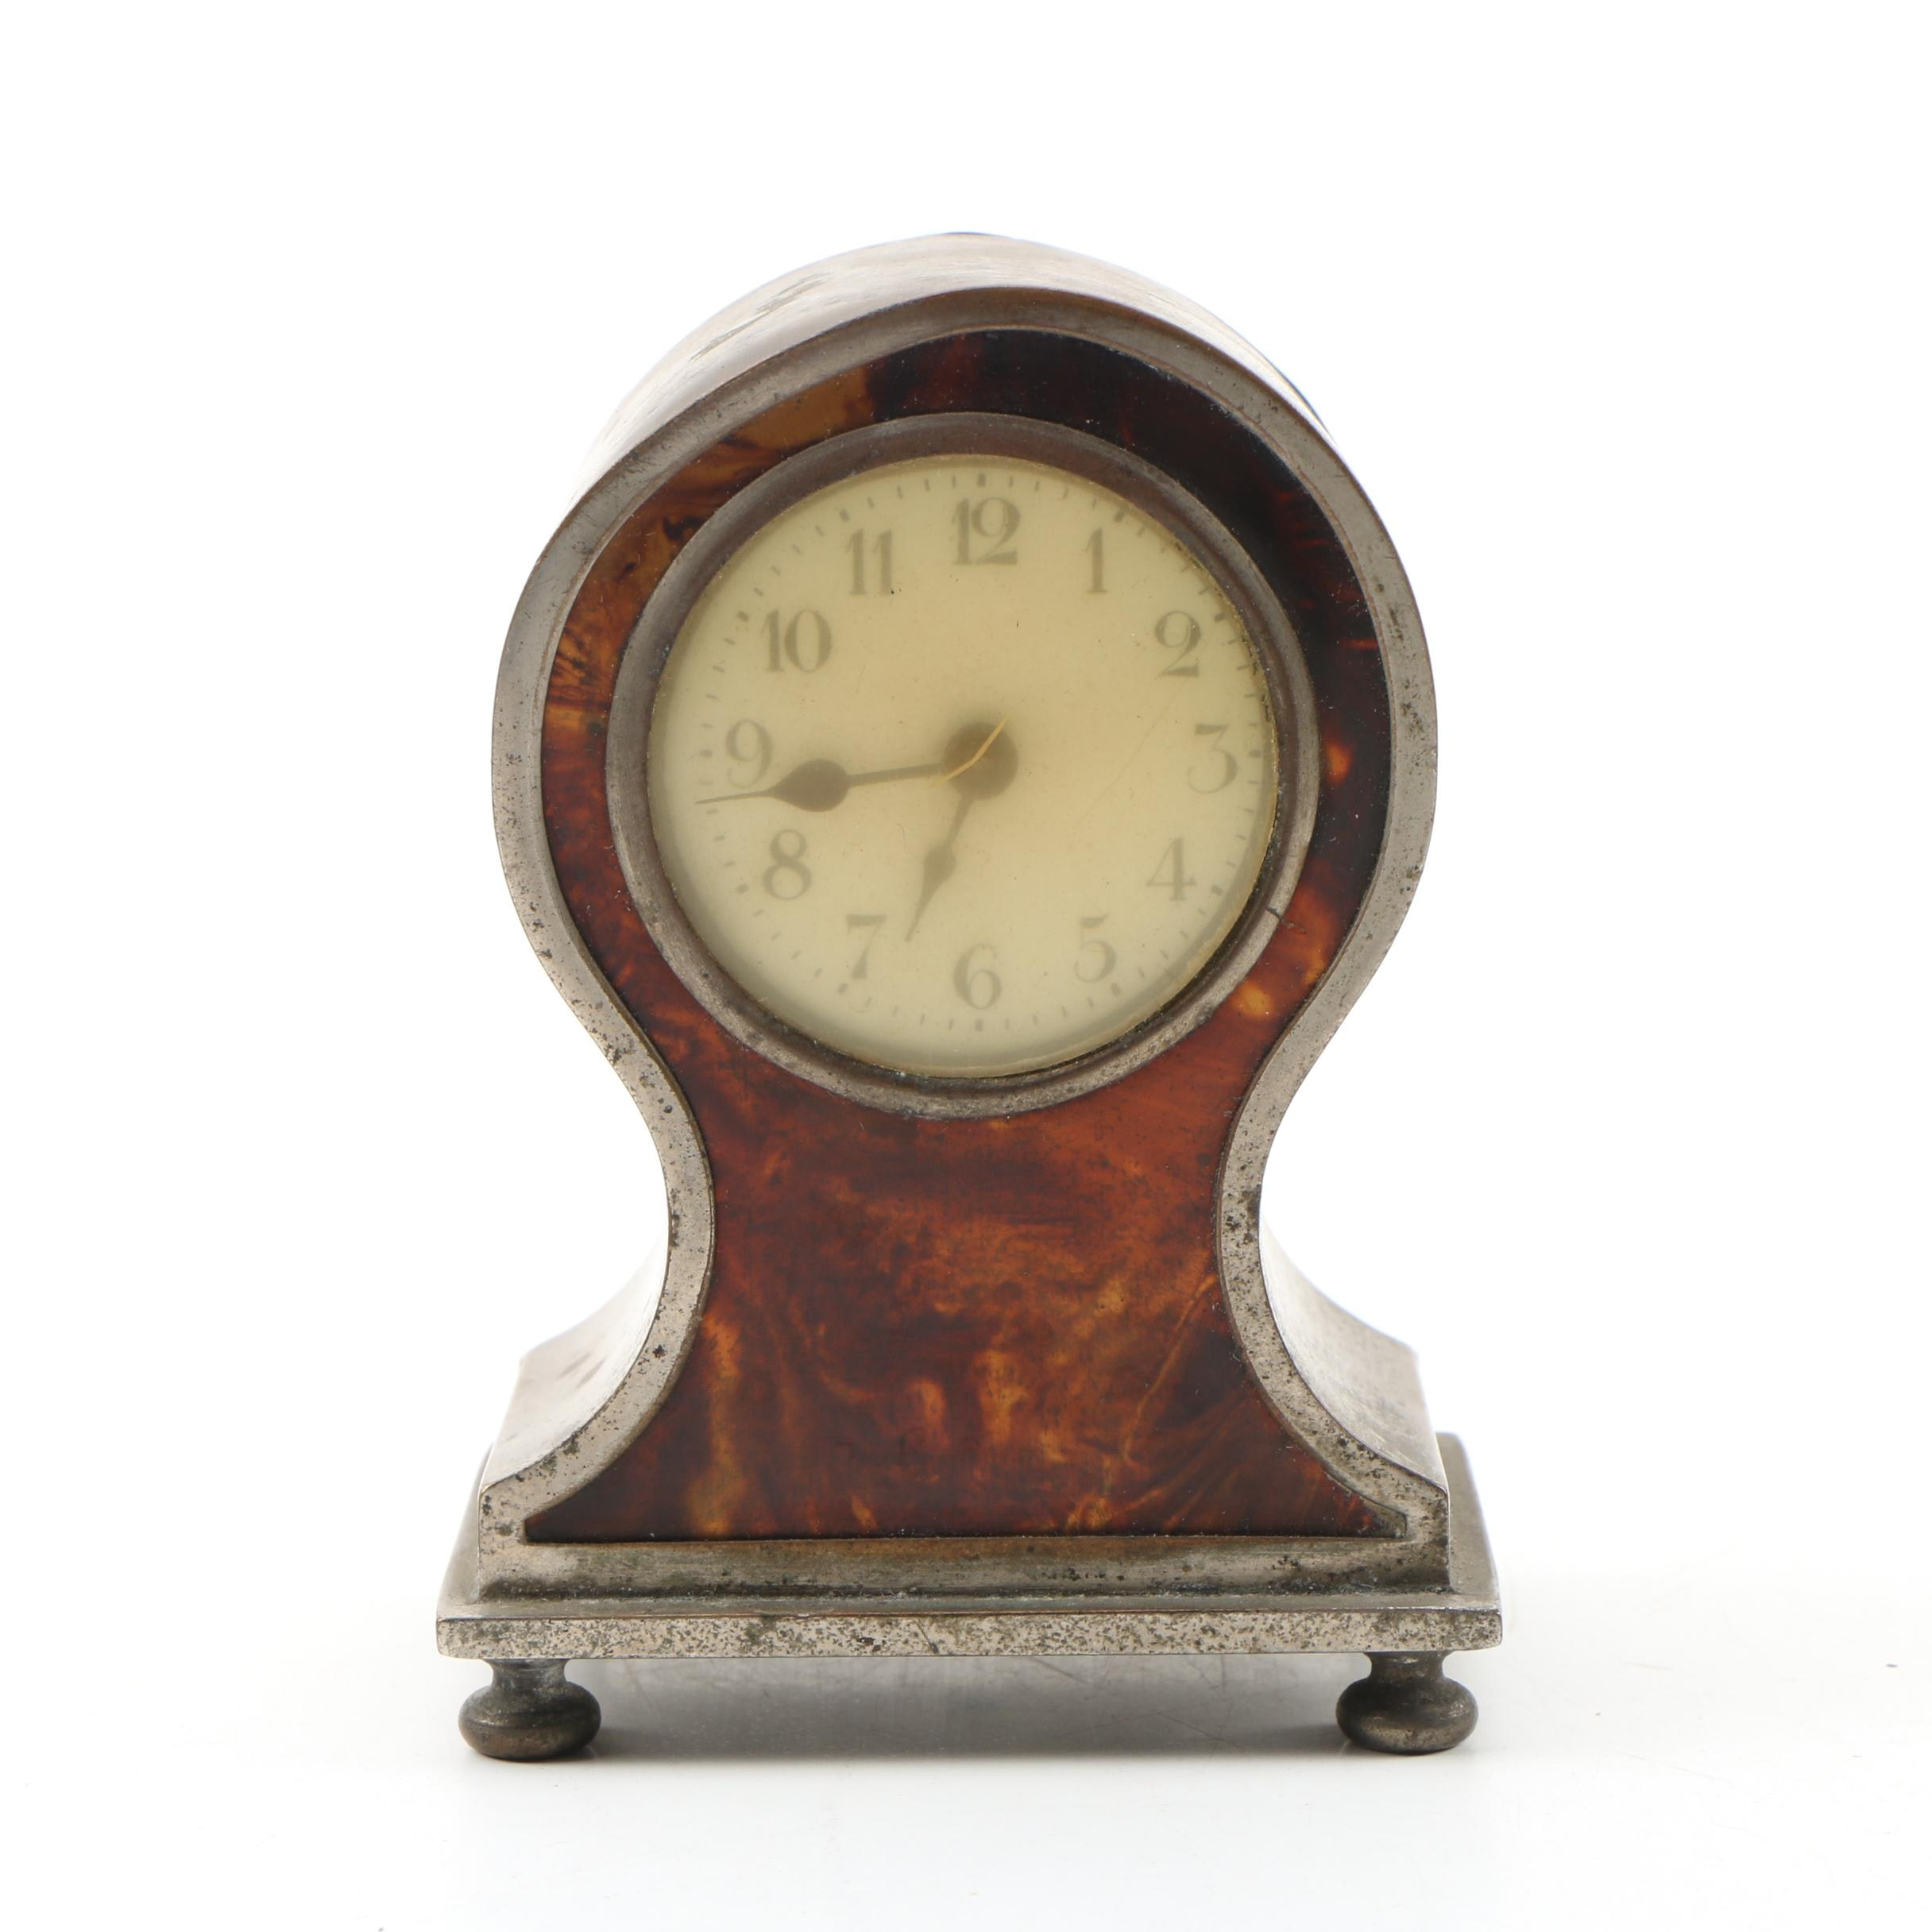 Faux Tortoiseshell and Metal Miniature Alarm Clock